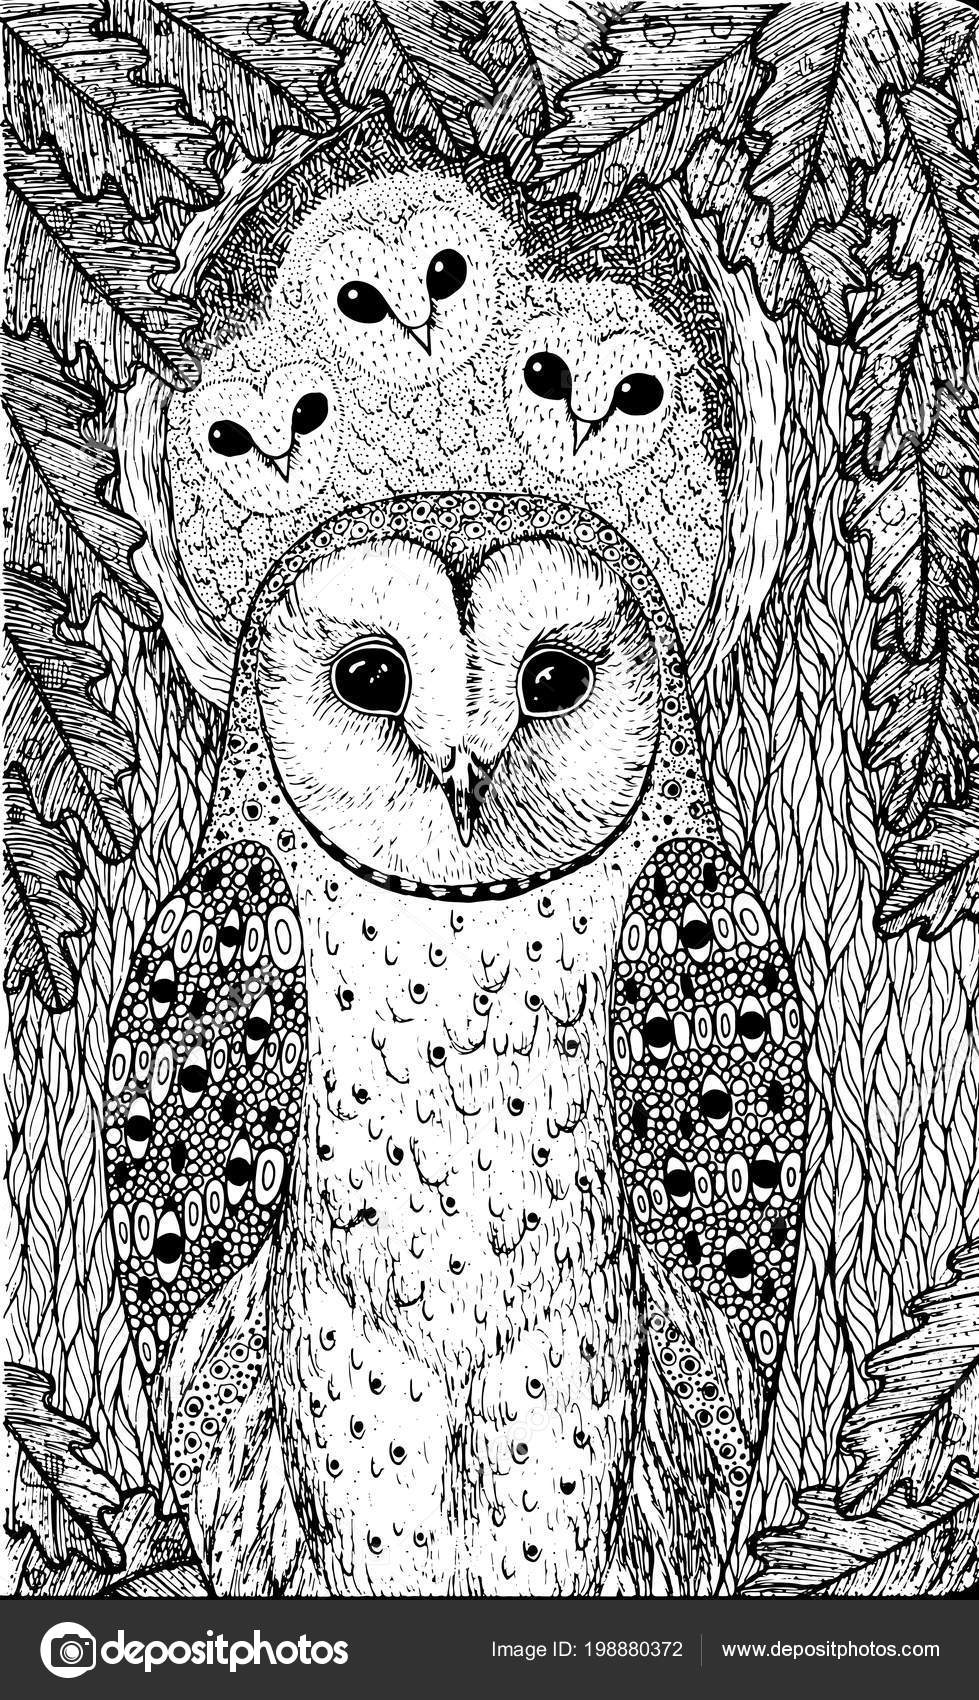 Coloring Page Adults Owls Oak Tree Realistic Ink Graphic Artwork